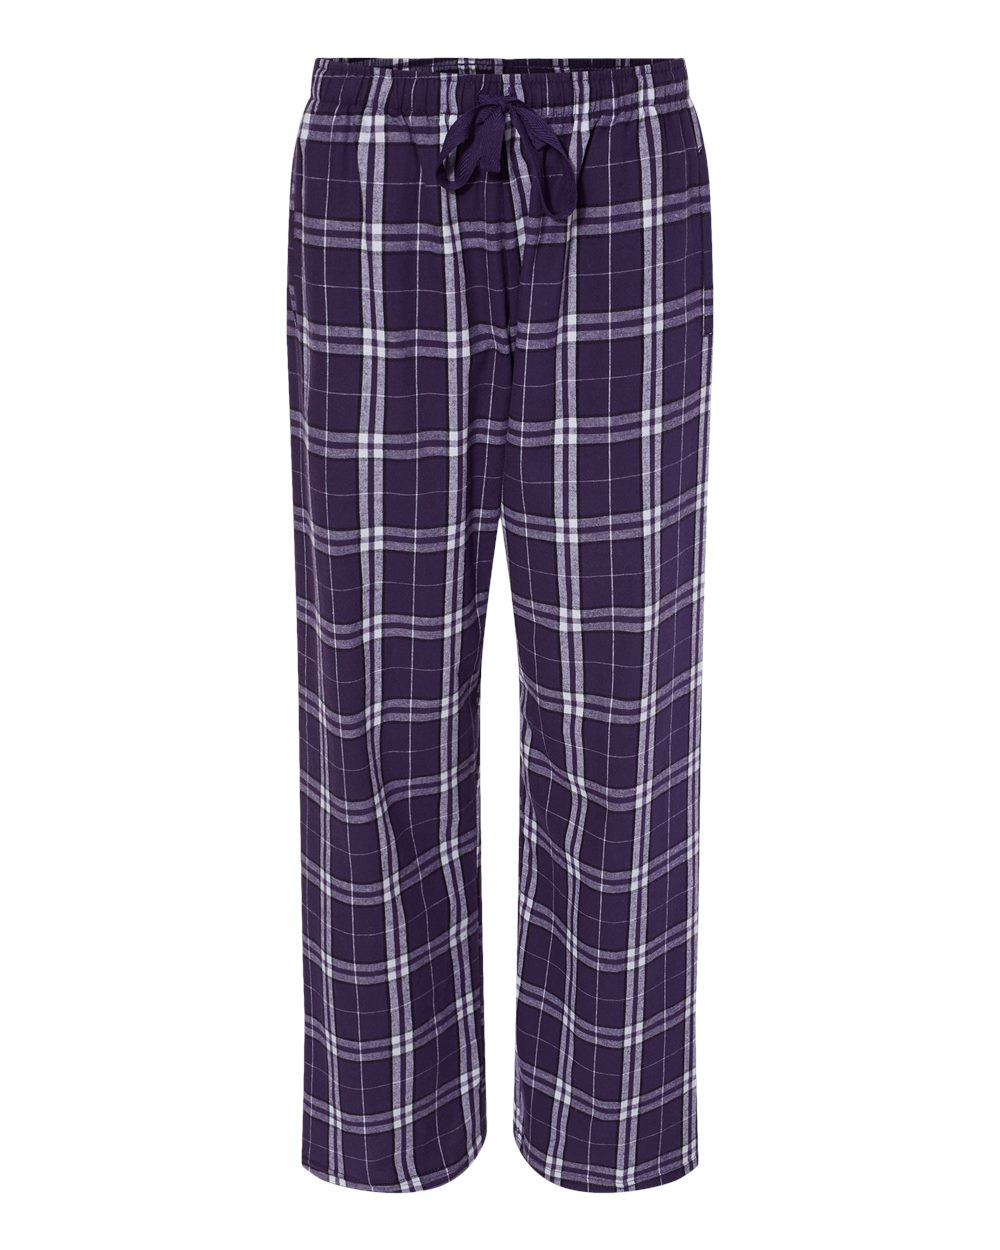 Boxercraft-Unisex-Flannel-Pants-With-Pockets-Pajama-Pants-F20-up-to-2XL thumbnail 36